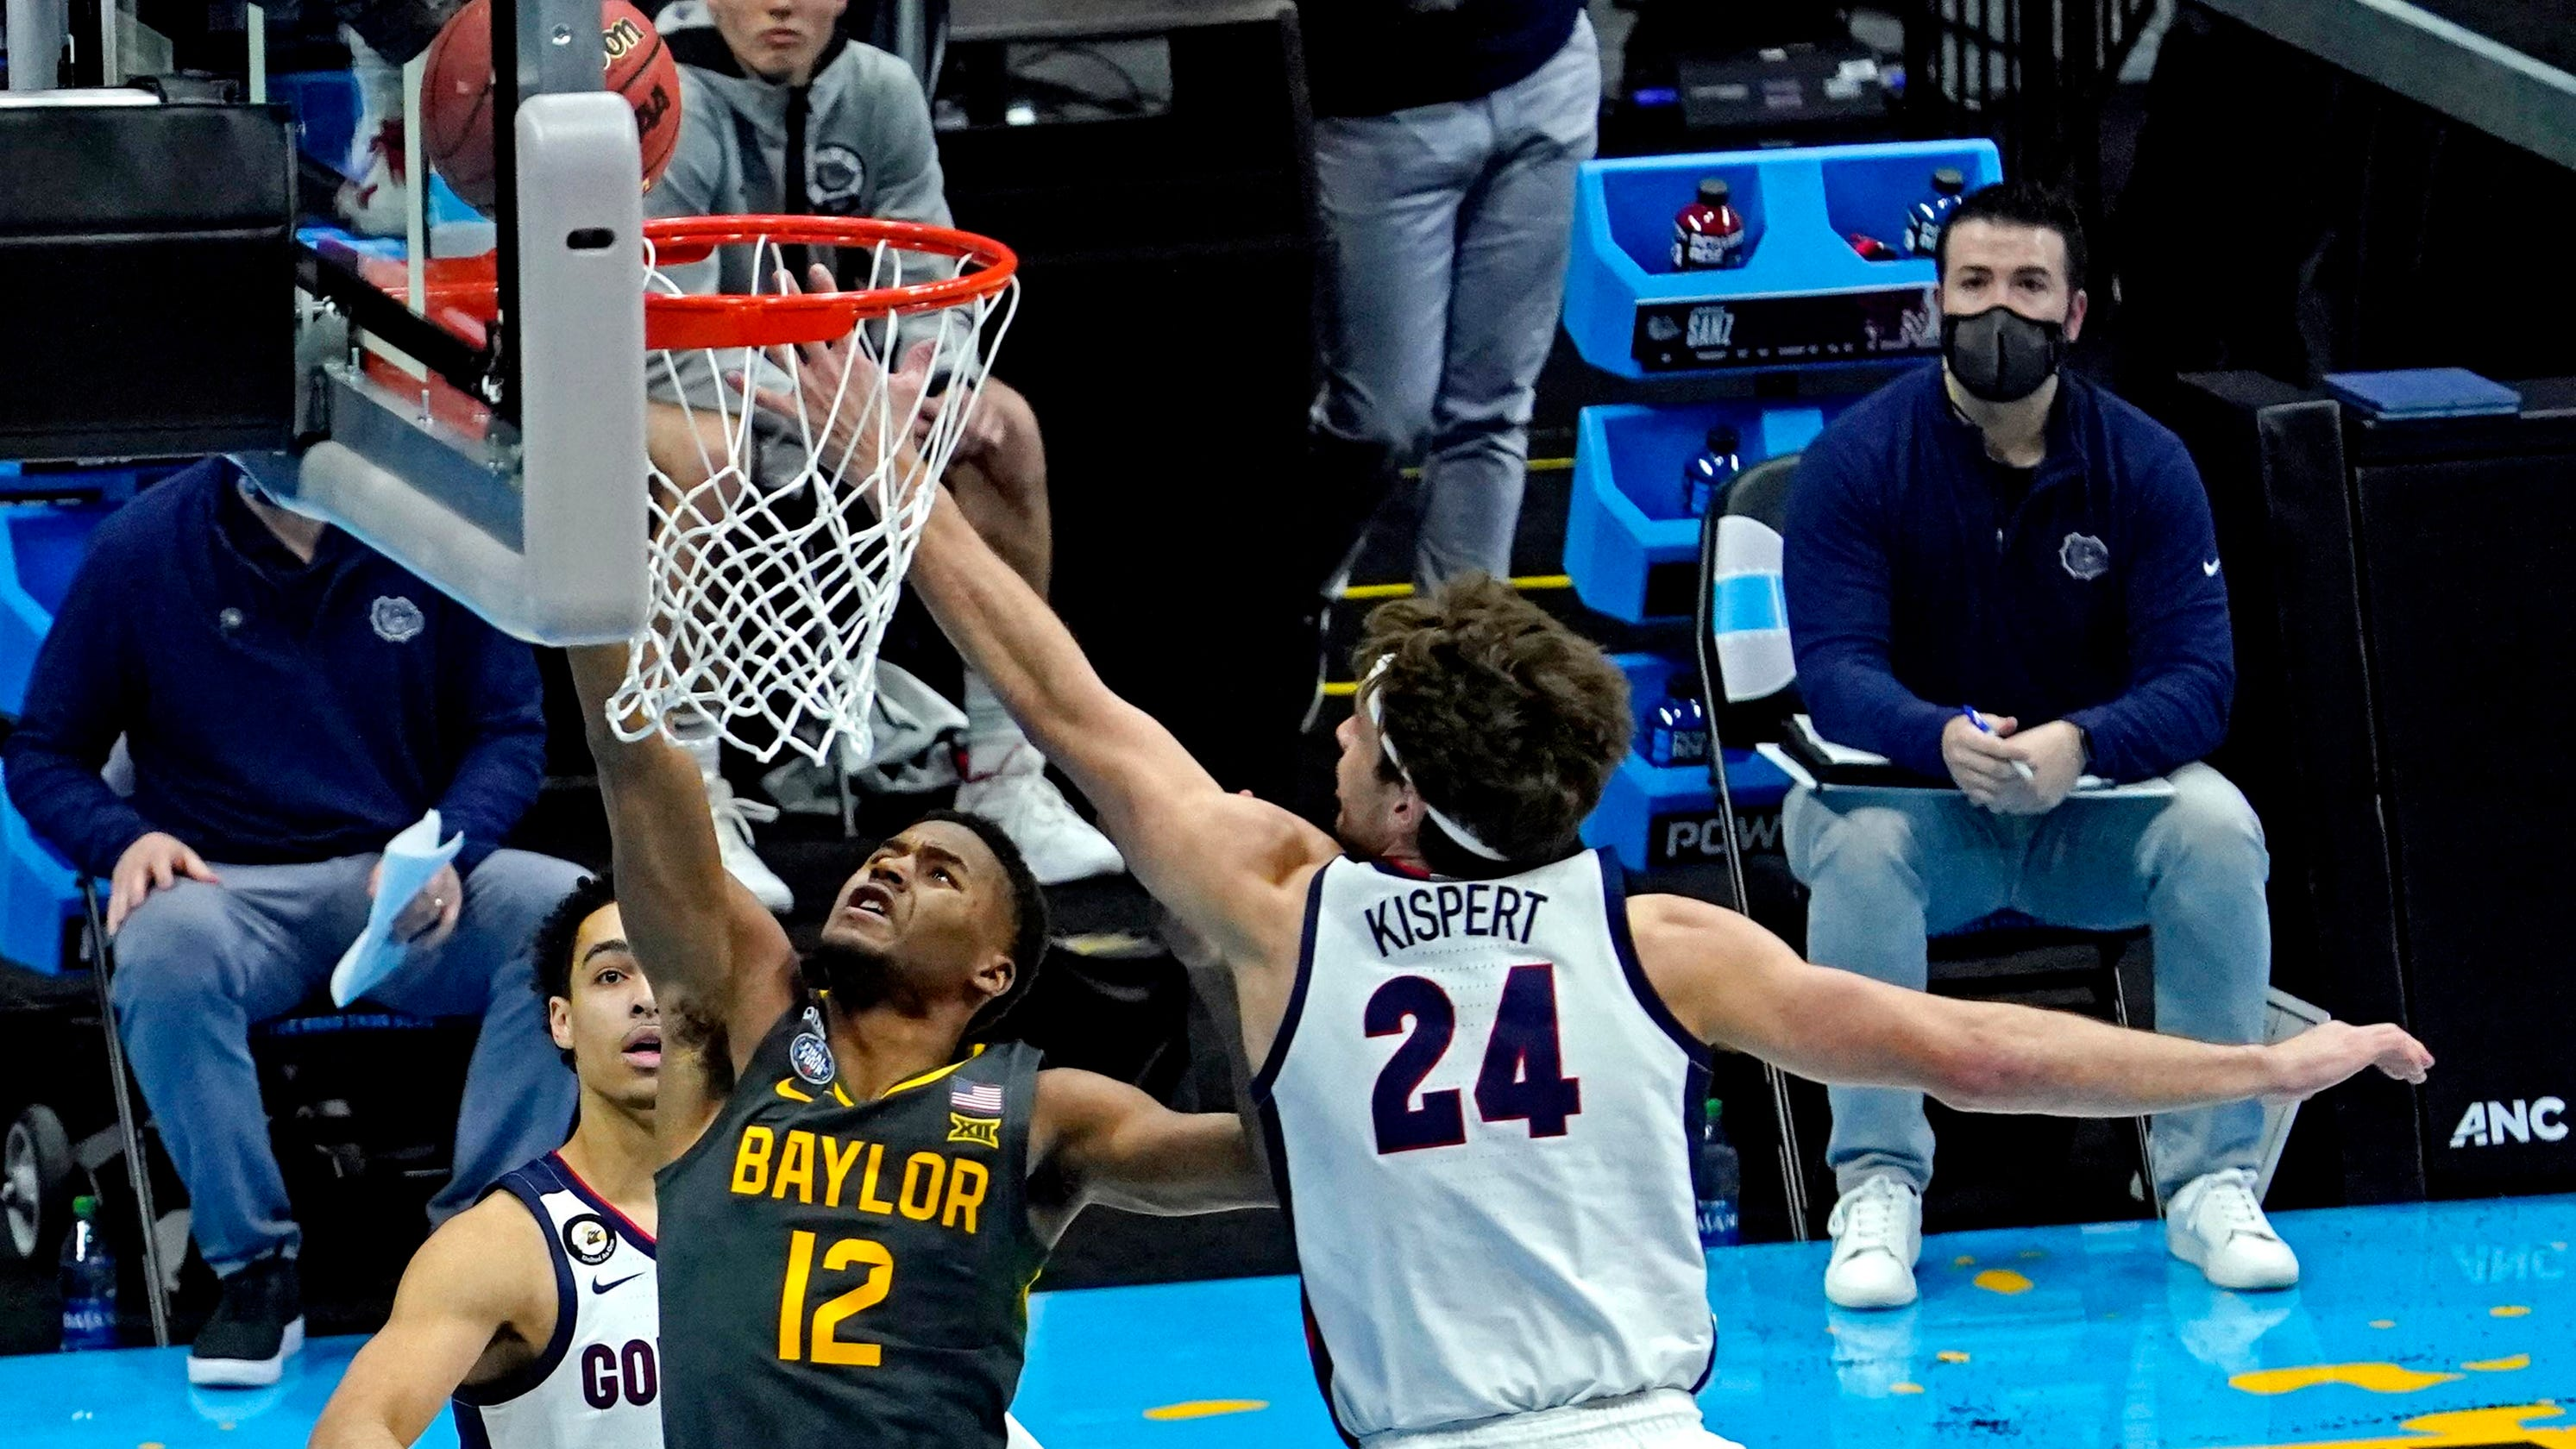 Gonzaga vs. Baylor: Score updates live analysis from 2021 men's NCAA championship game – USA TODAY